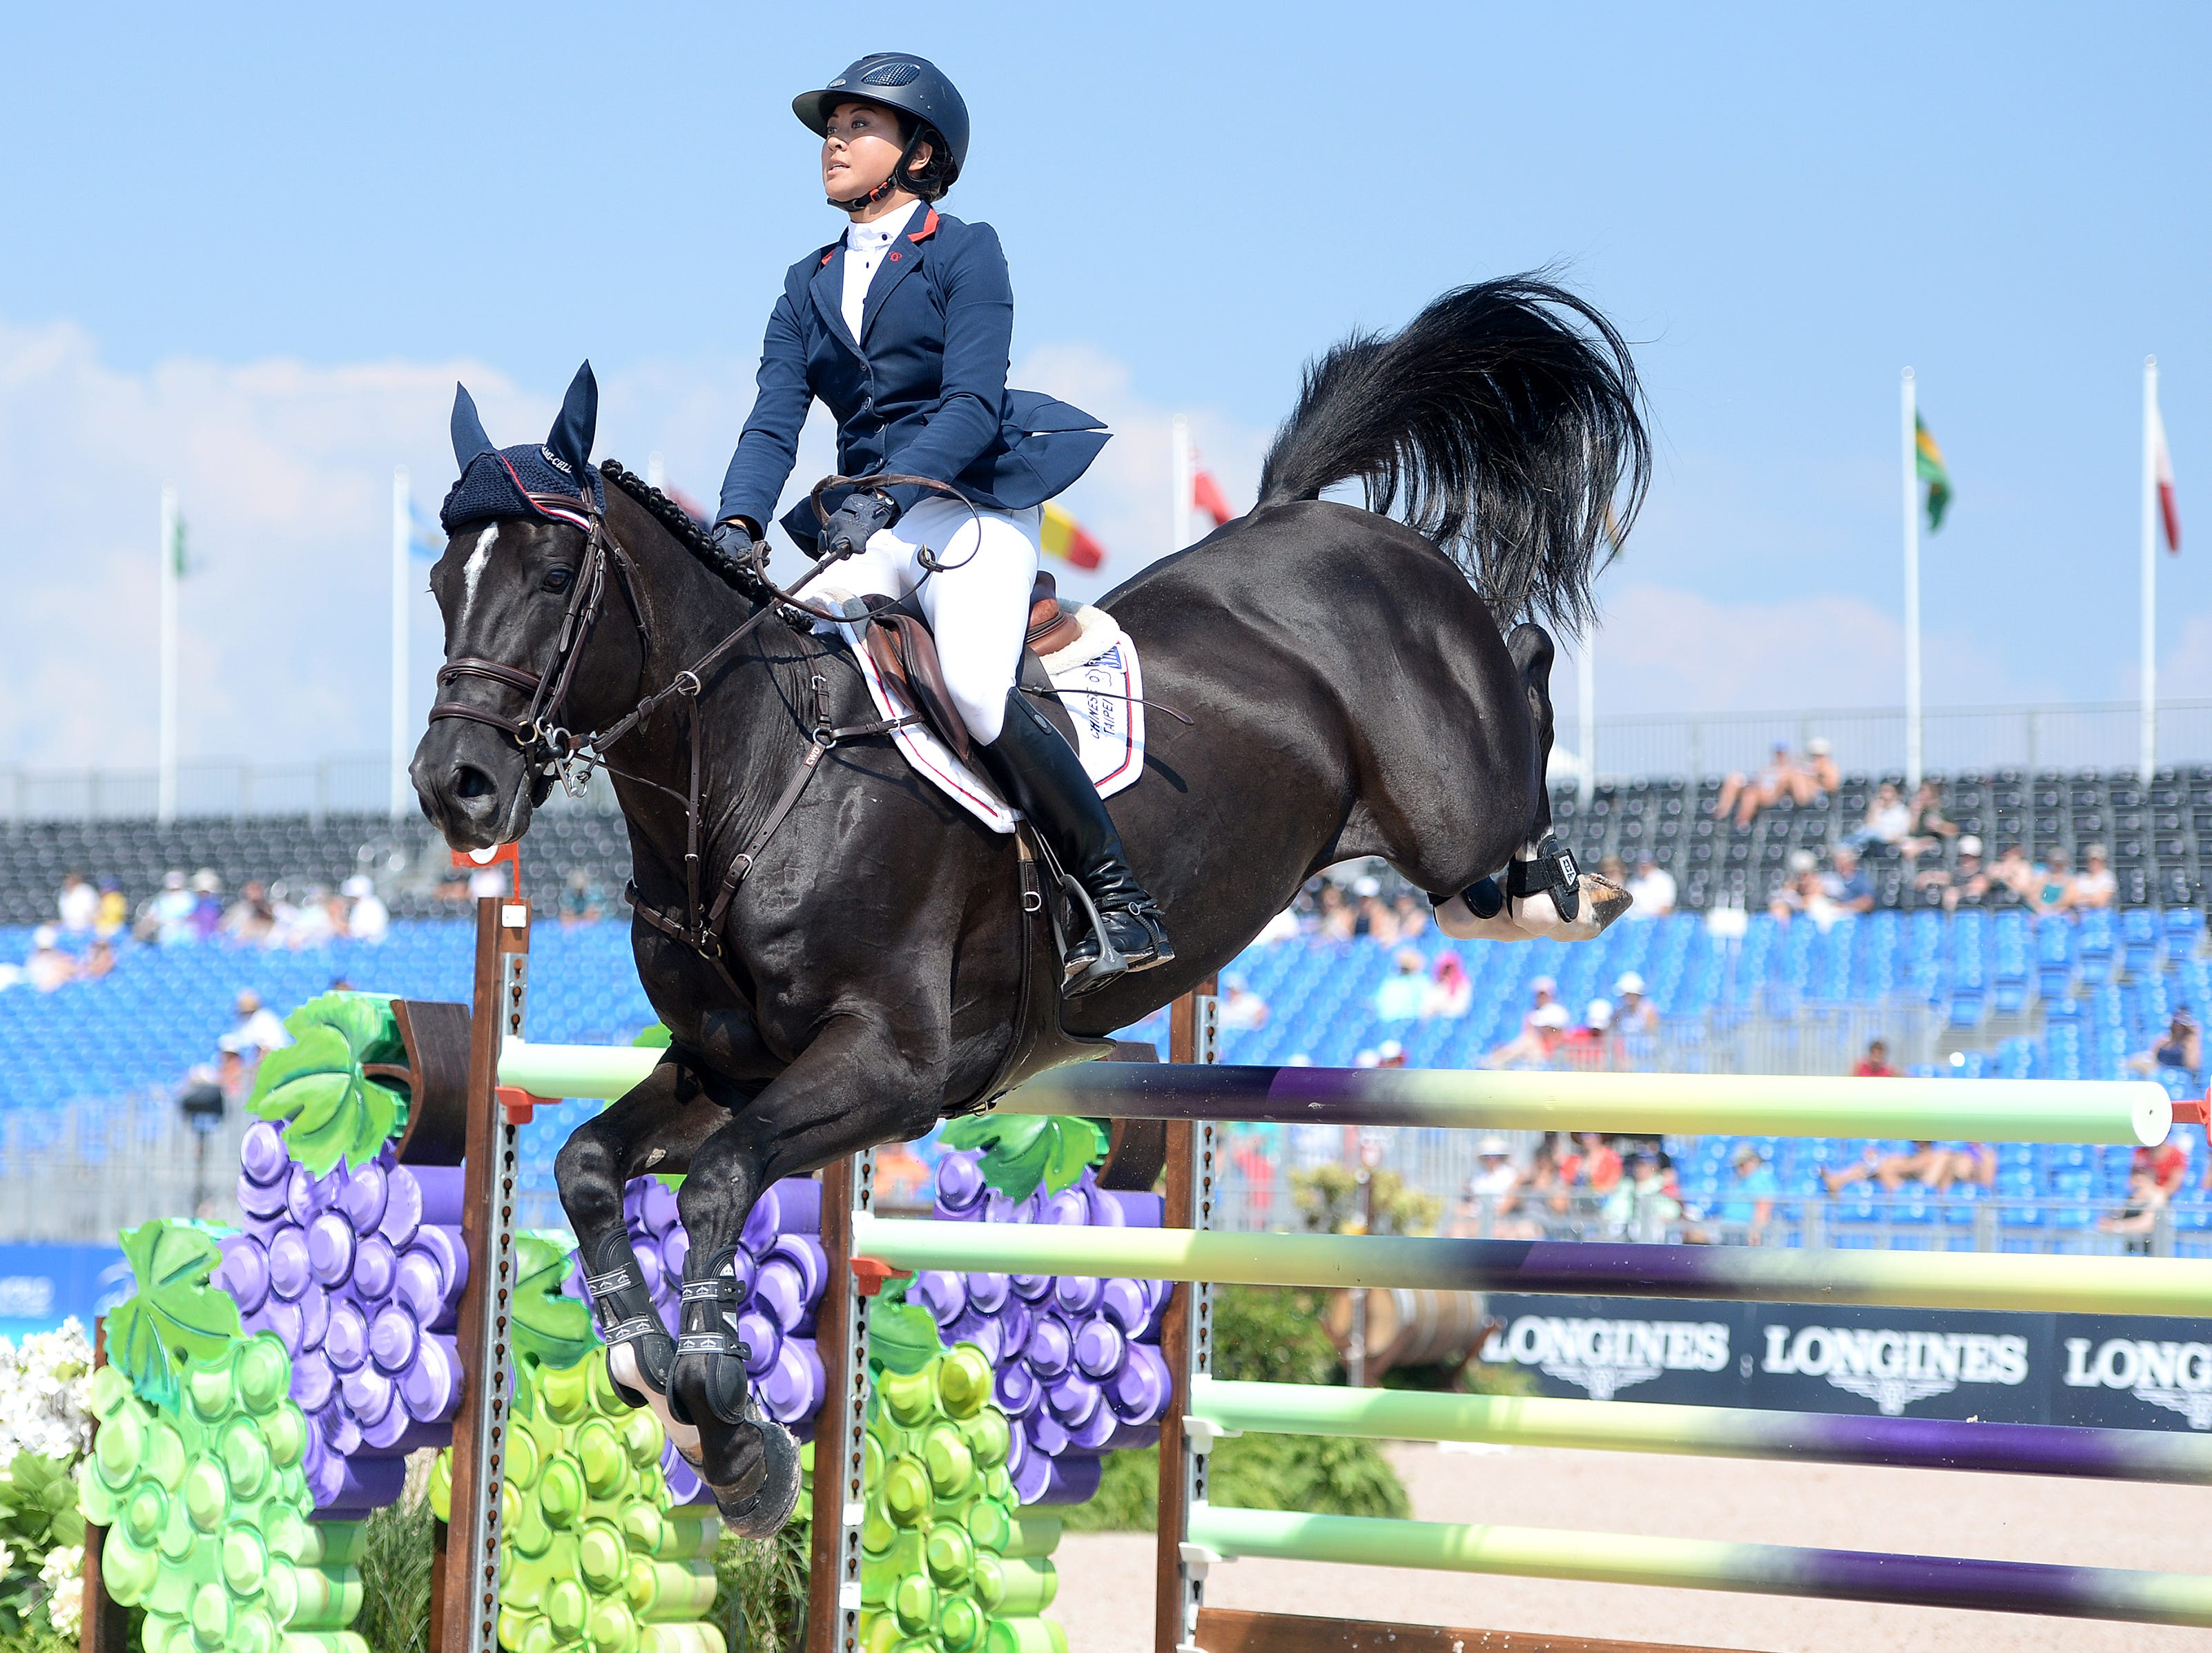 Jasmine Chen, of Taipei, on Jaguar vd Berghoeve, competes in the team jumping competition of the FEI World Equestrian Games at the Tryon International Equestrian Center on Sept. 20, 2018.